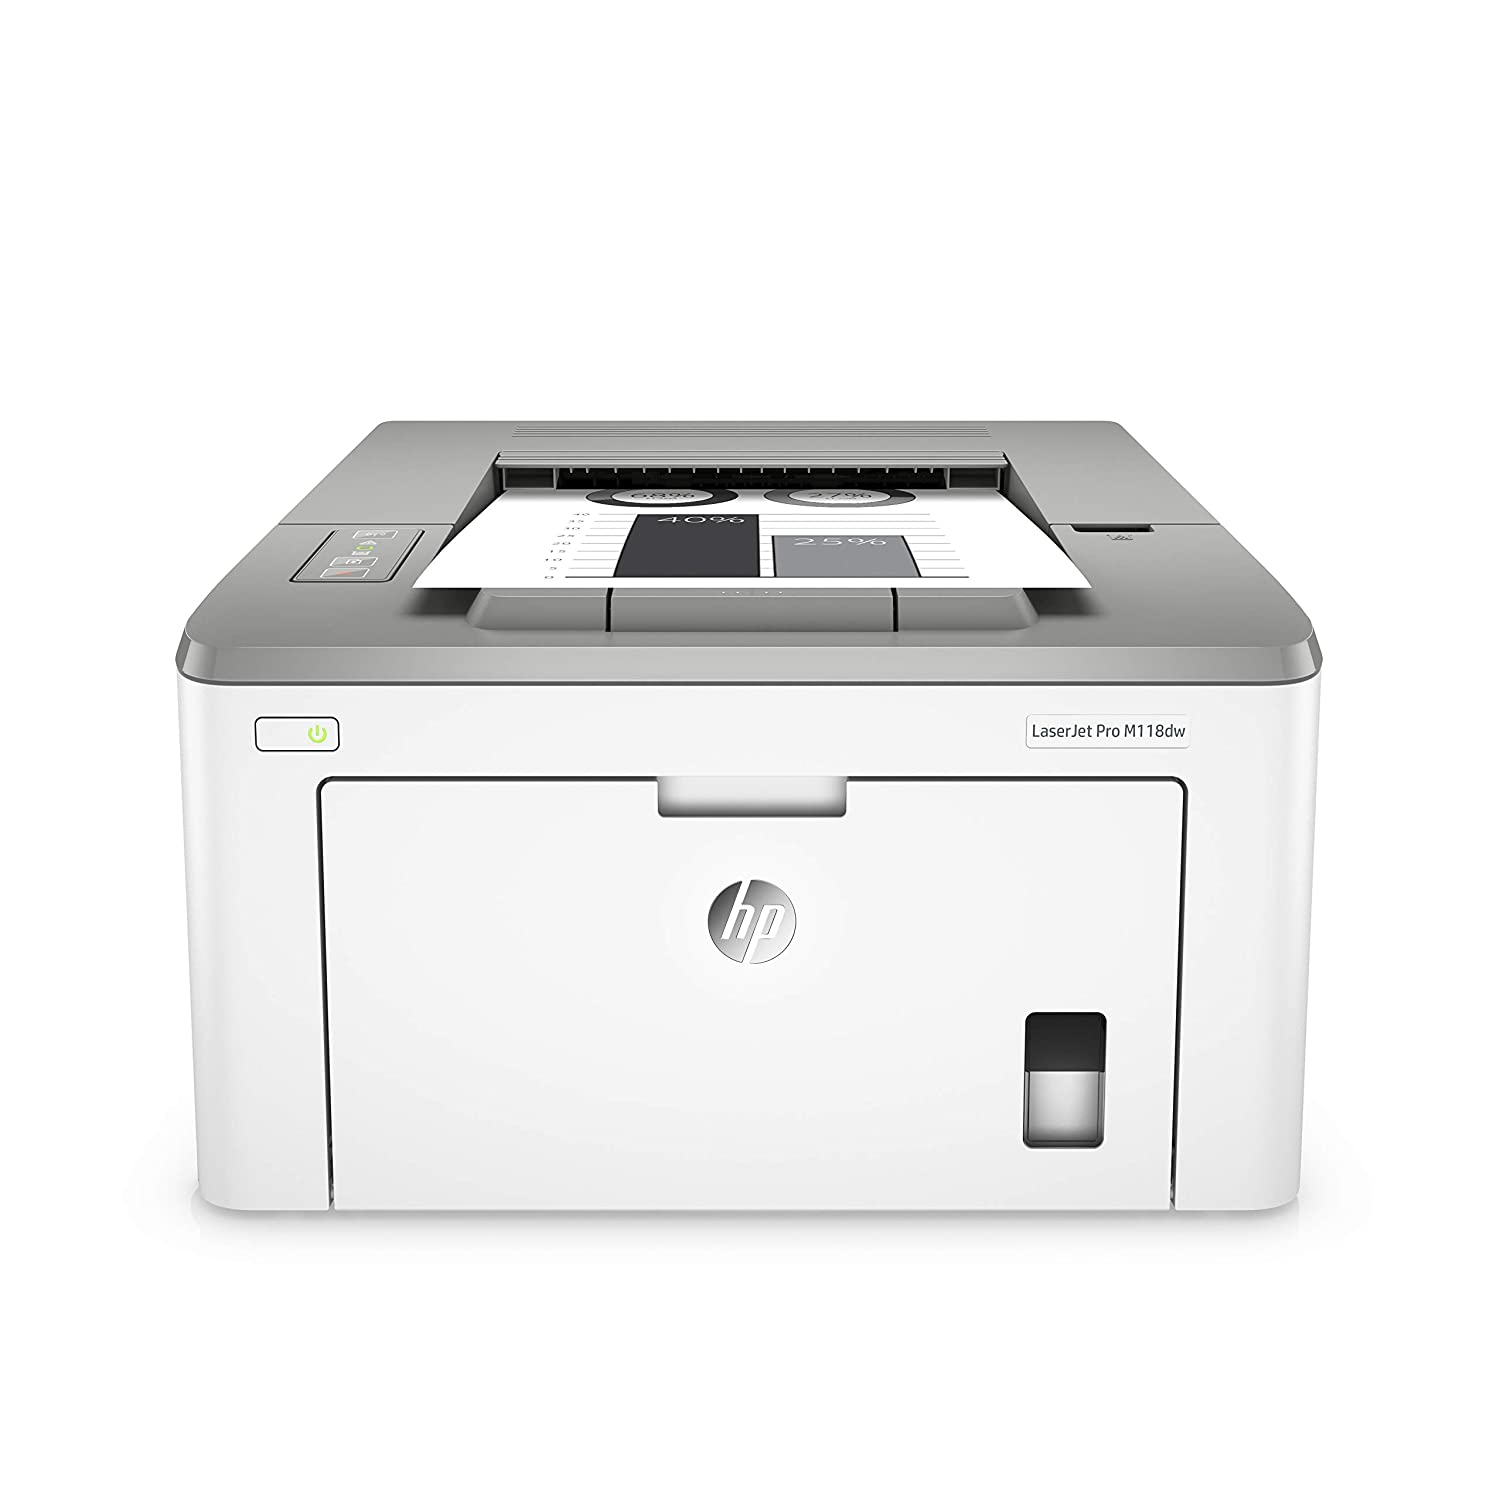 HP Laserjet Pro M118dw Wireless Laser Printer with Auto Duplex Printing, Mobile Printing & Built-in Ethernet (4PA39A) 4PA39A#BGJ